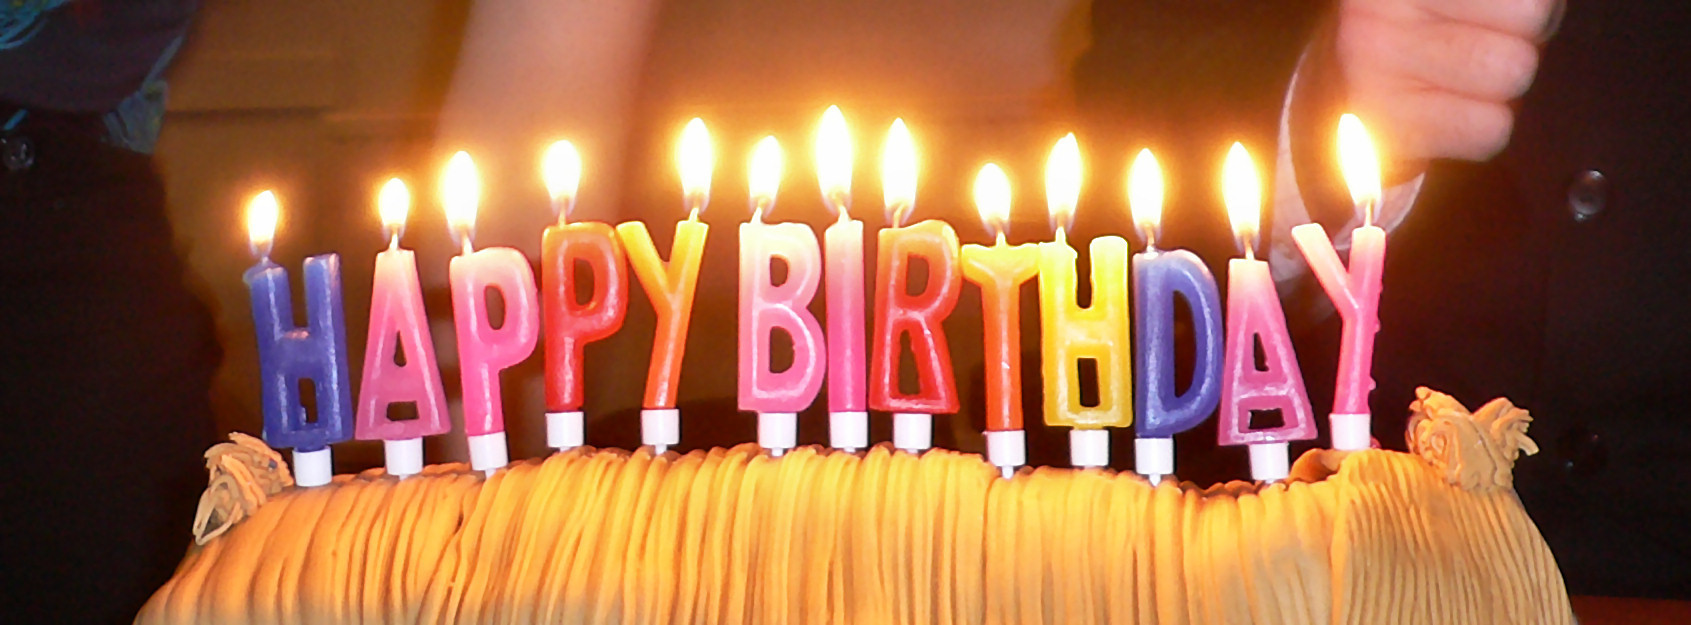 http://images2.fanpop.com/images/photos/5200000/Birthday-happy-birthday-fanpop-users-5265293-1691-625.jpg